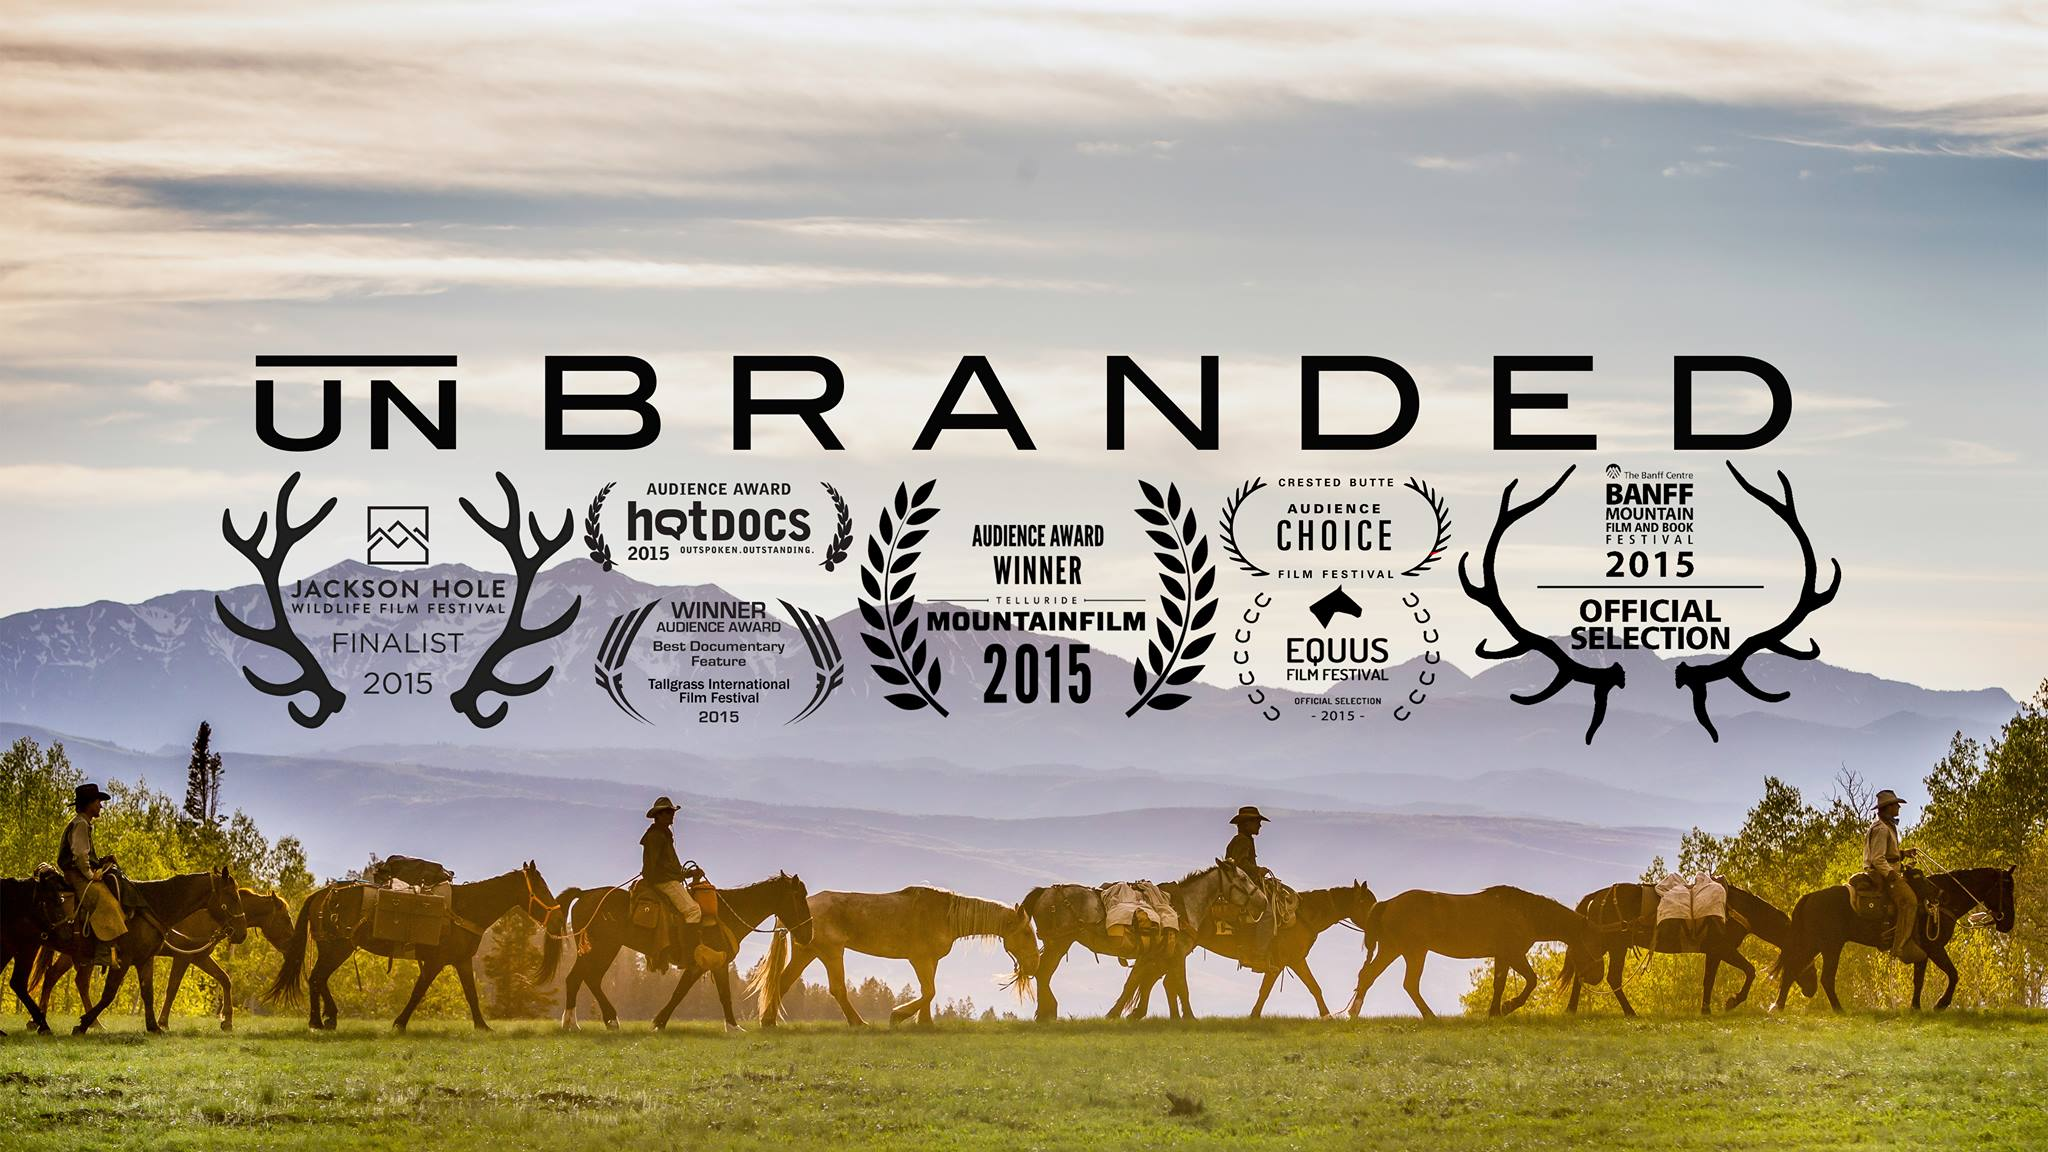 Documentary following four friends as they adopt, train, and ride 16 wild mustangs from Mexico to Canada through the wildest terrain in the American West.